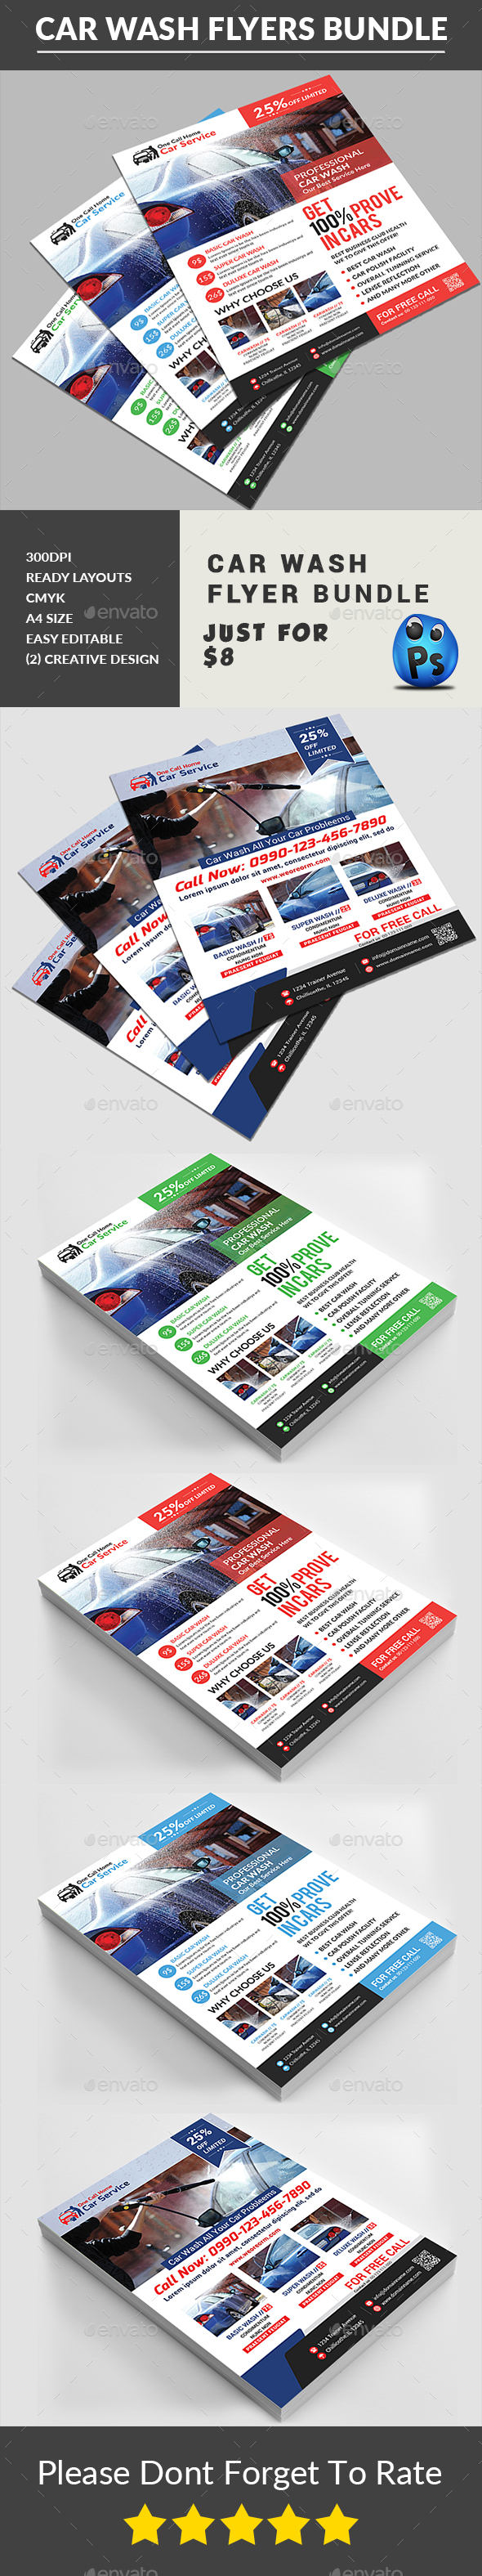 Car Wash Flyers Bundle - Corporate Flyers